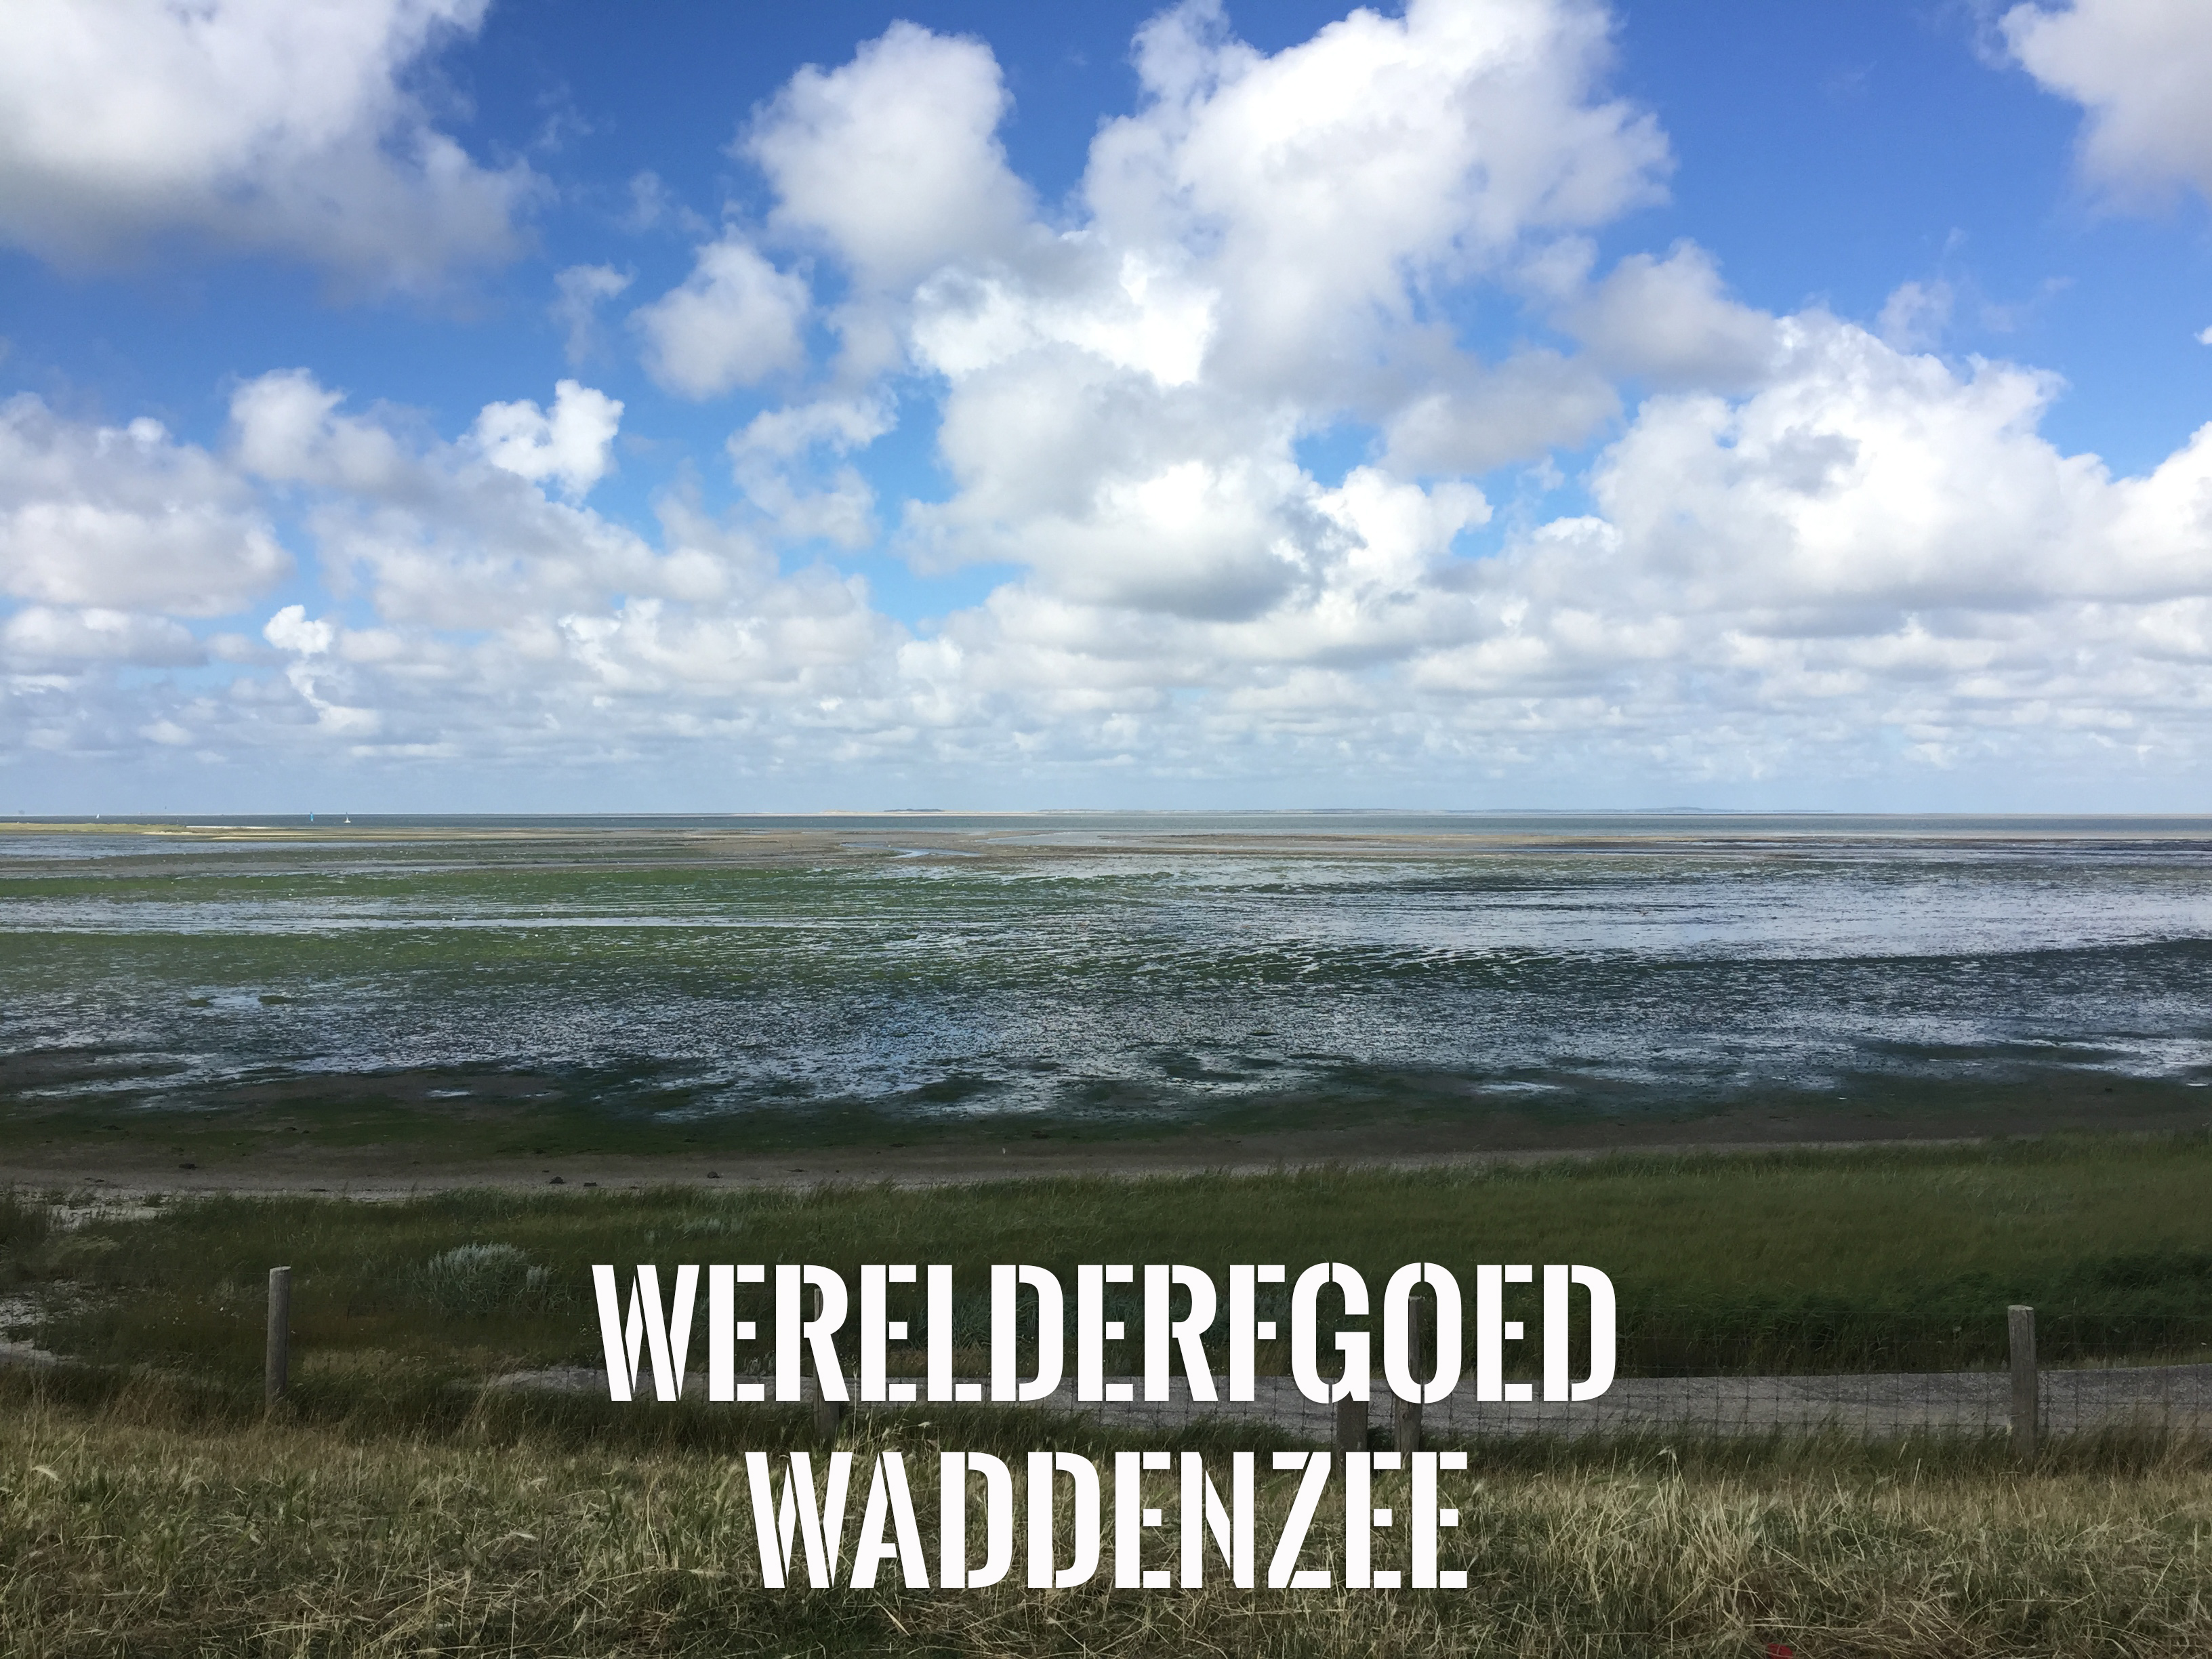 WADDENZEE UNESCO